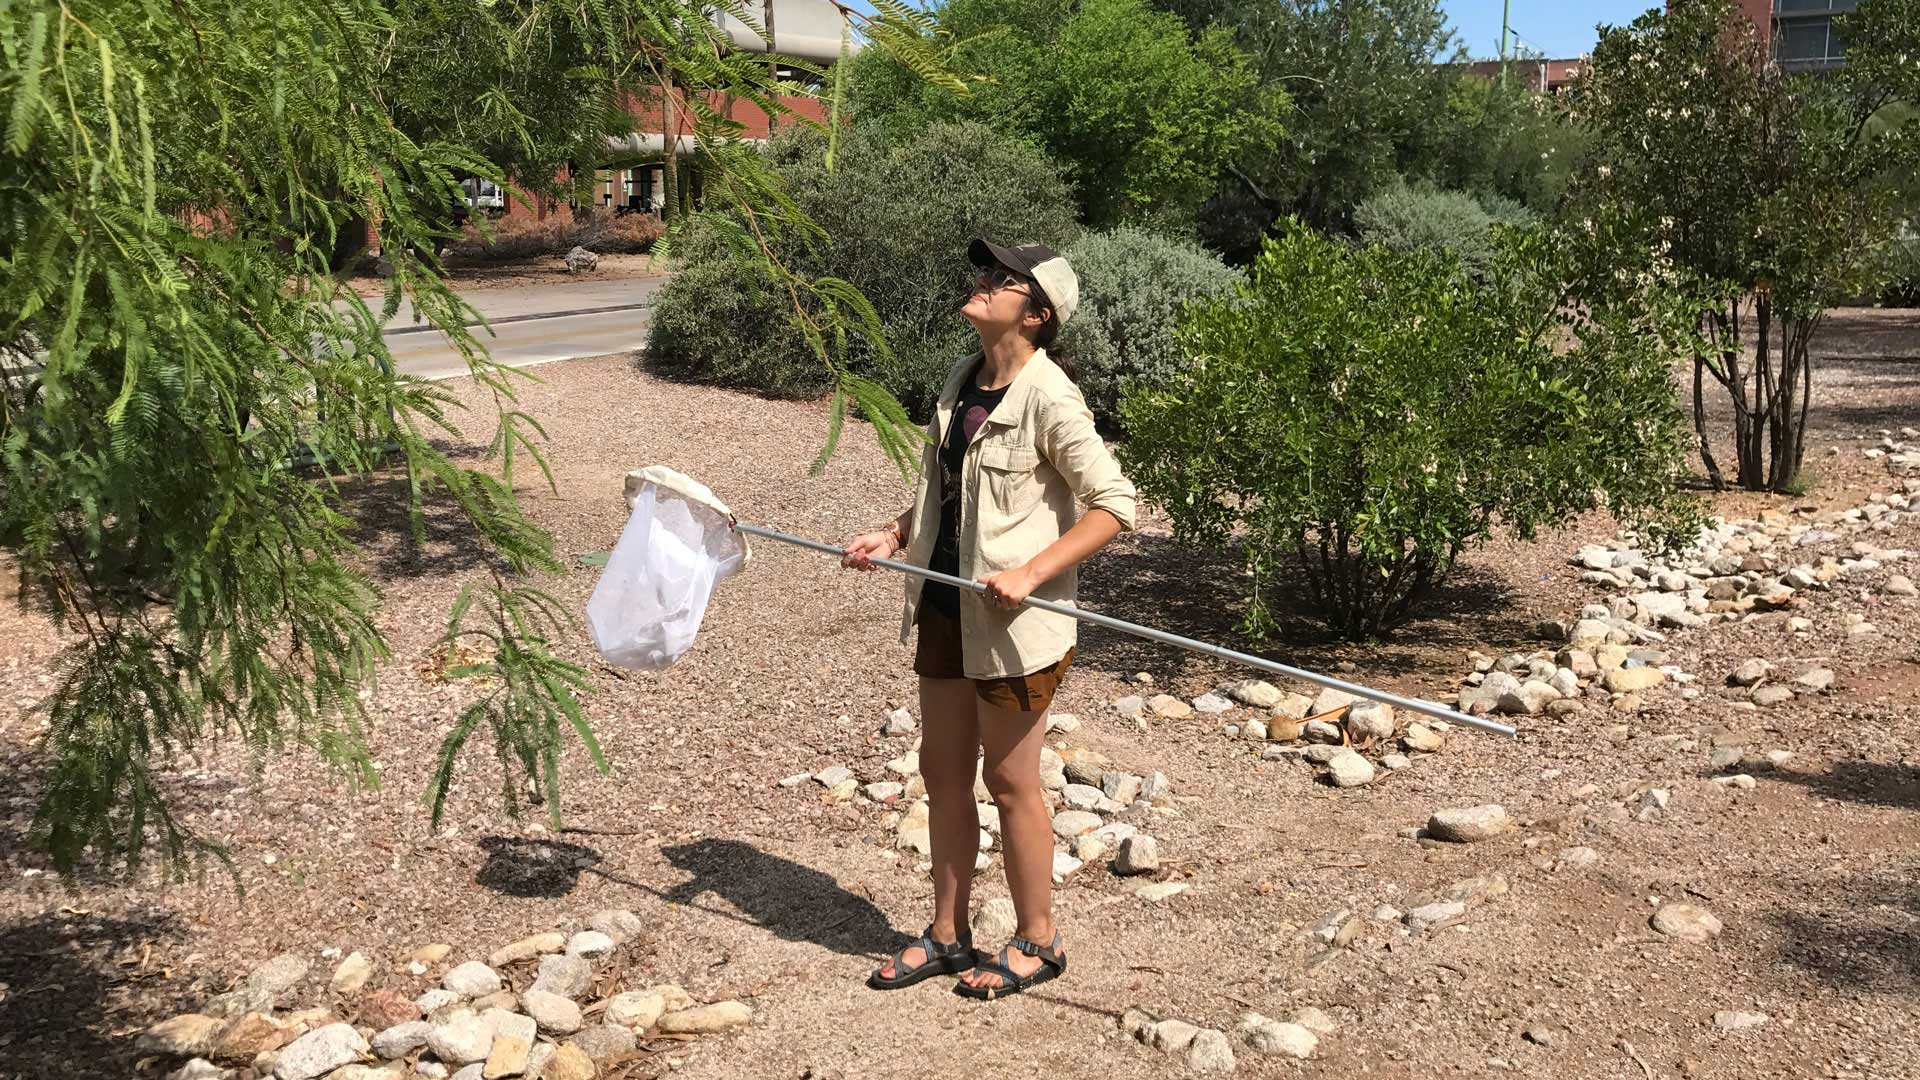 DeAnna Bublitz finds plenty of cicadas on the University of Arizona's mesquite trees.